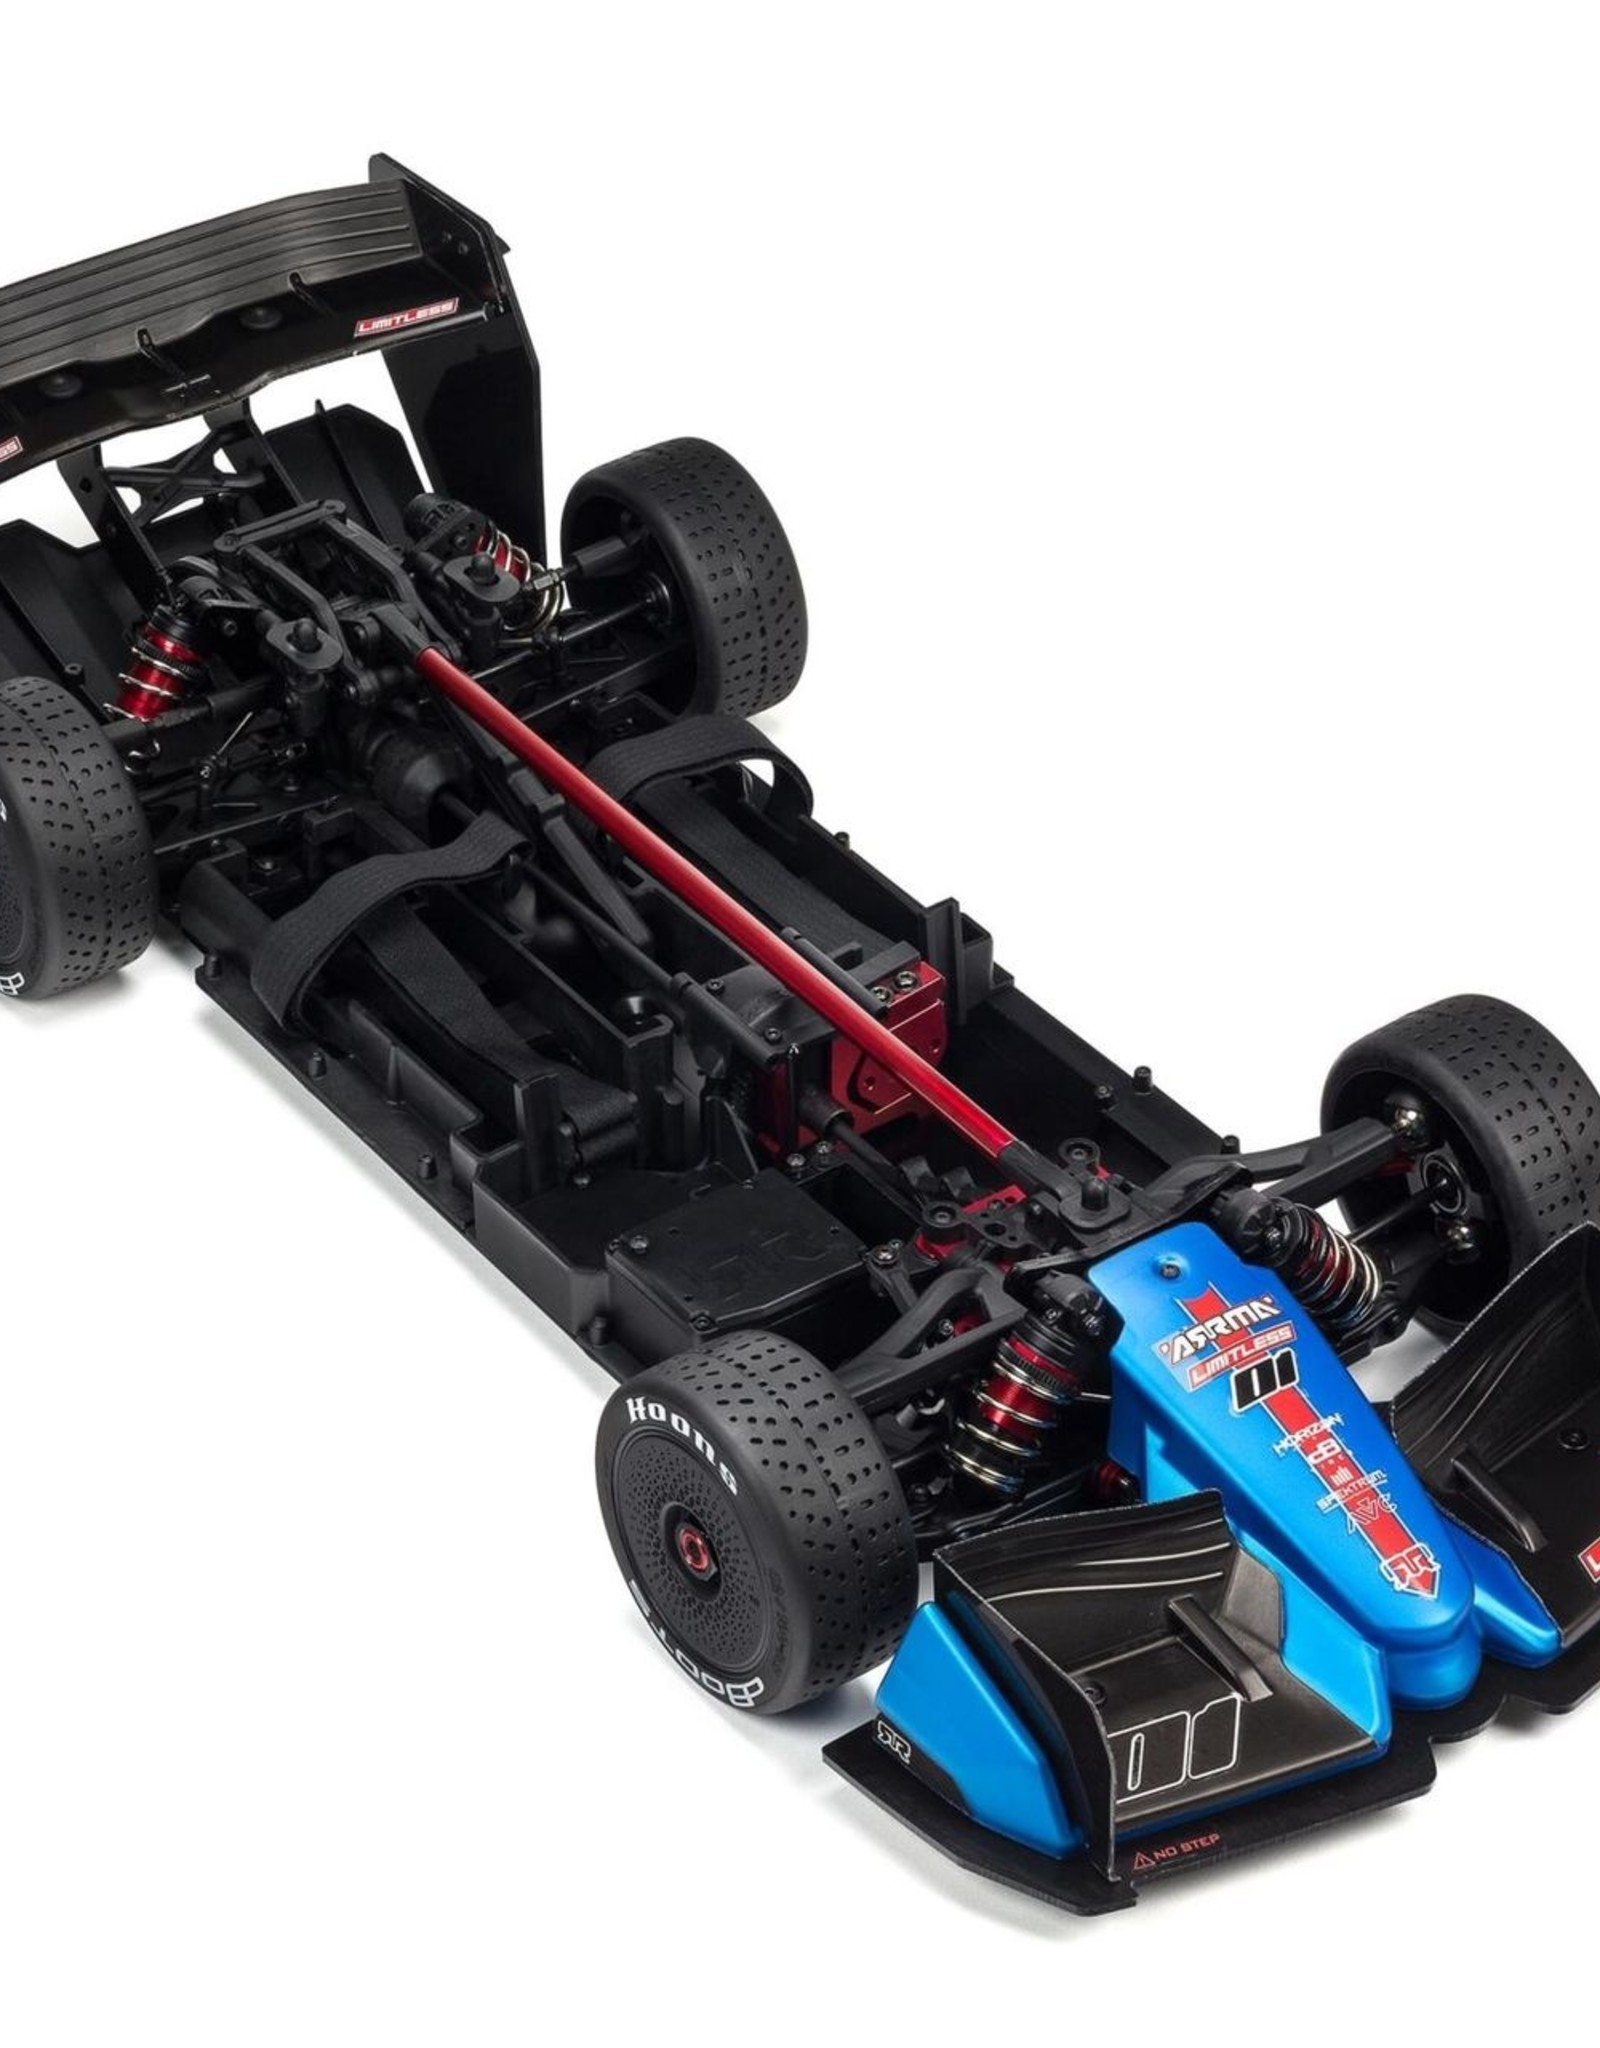 Arrma Arrma Limitless 1/7 Speed Basher